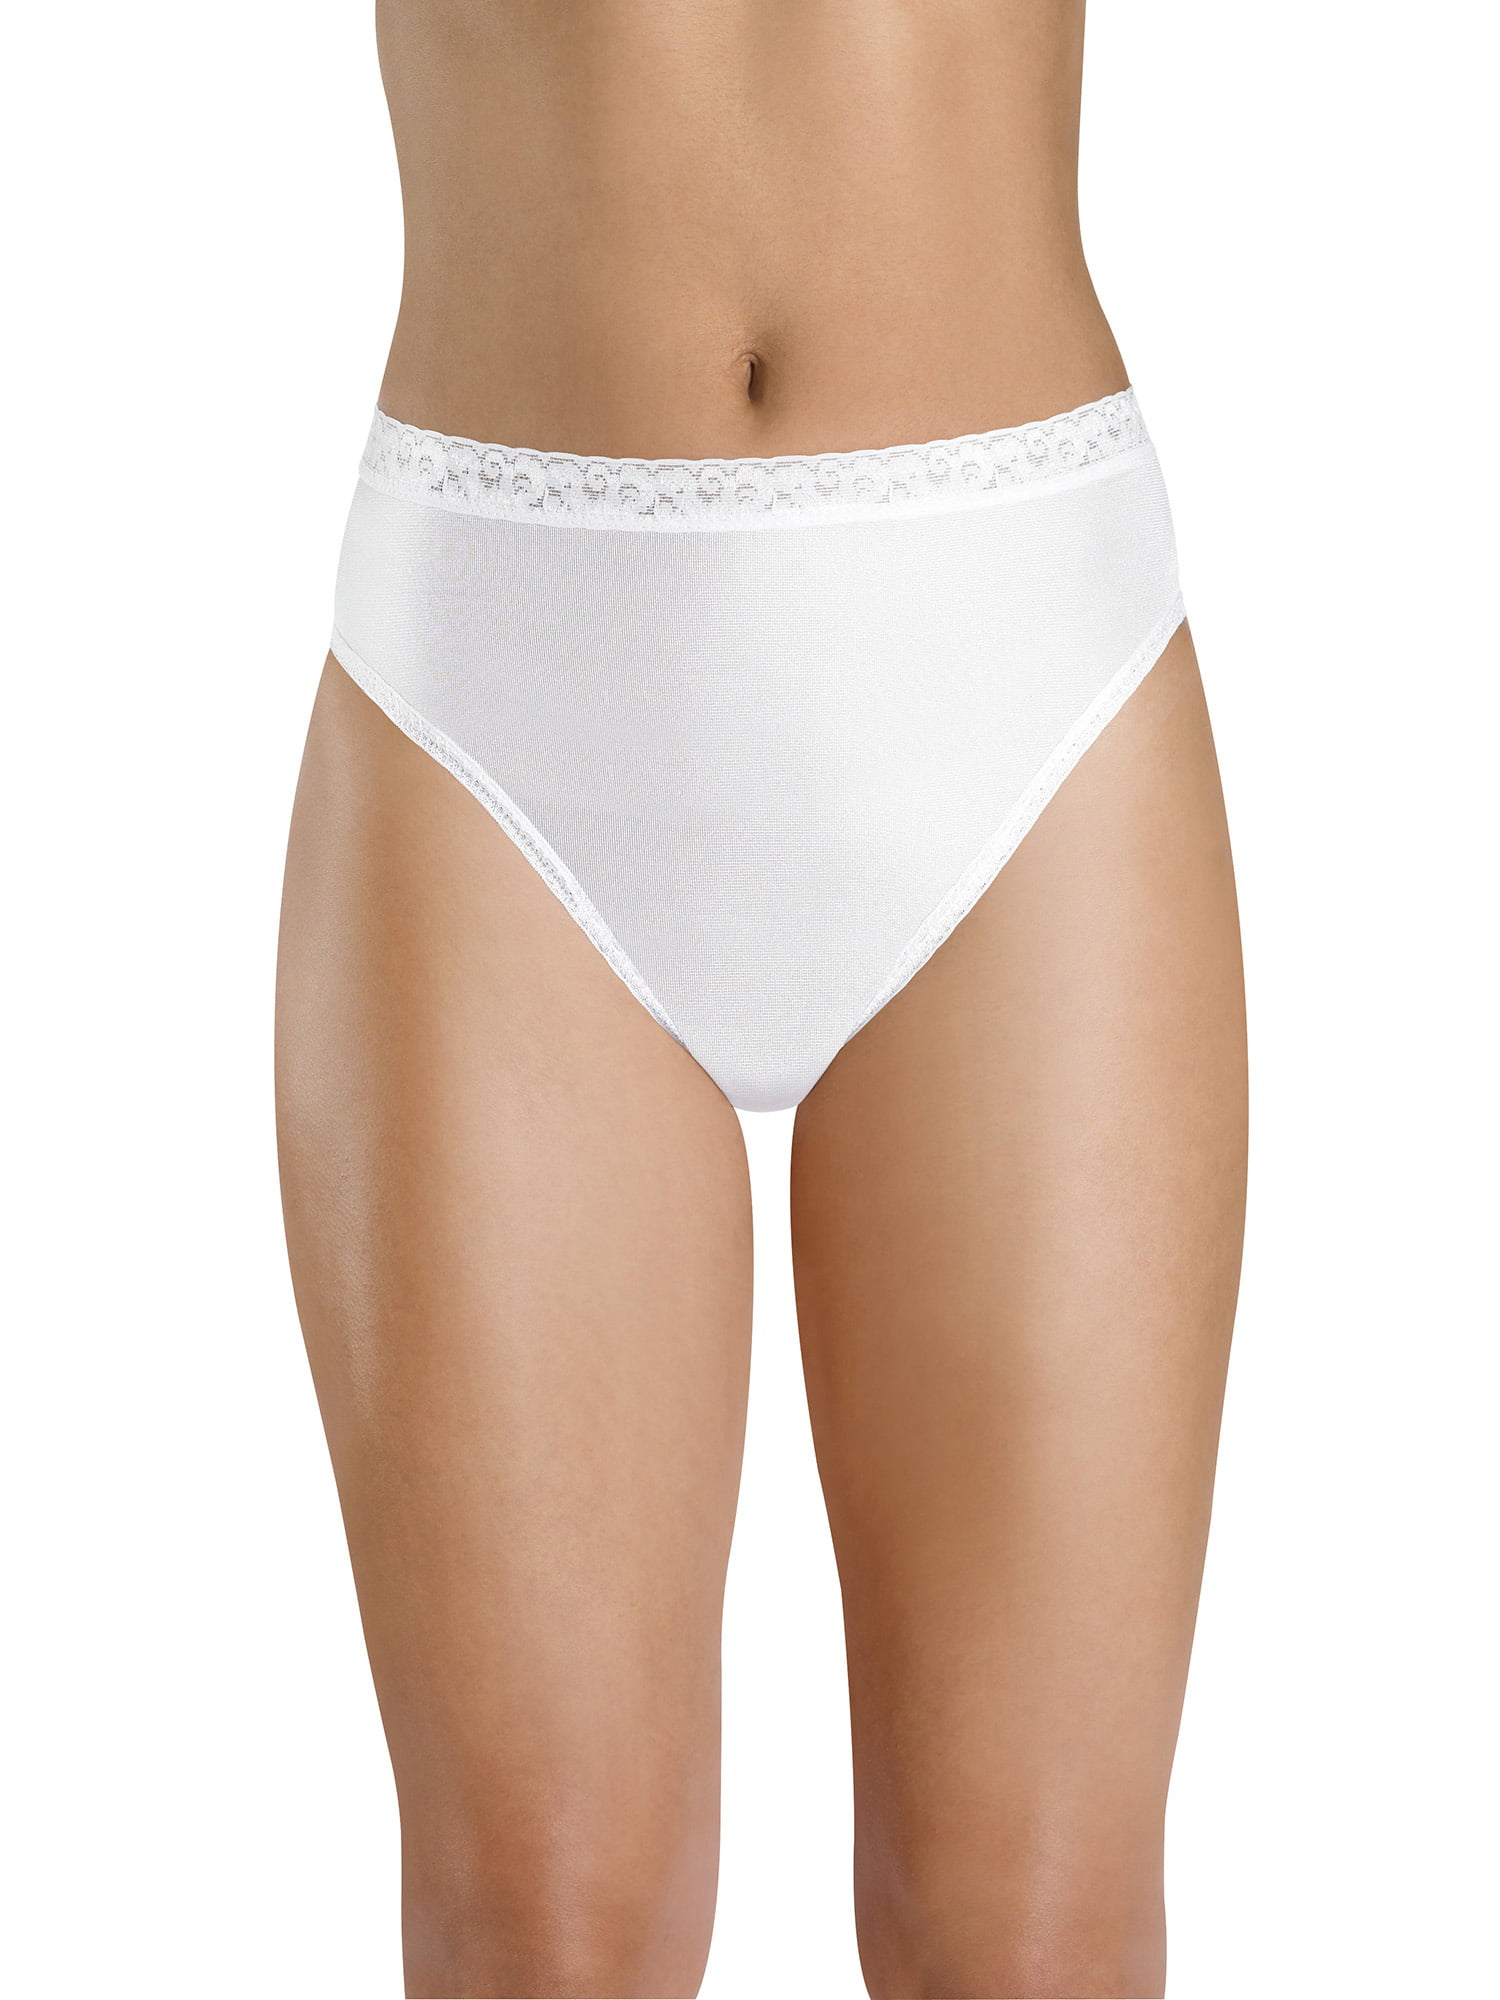 174401cce44e Women's Nylon Hi-Cut Panties - 6 Pack - Walmart.com